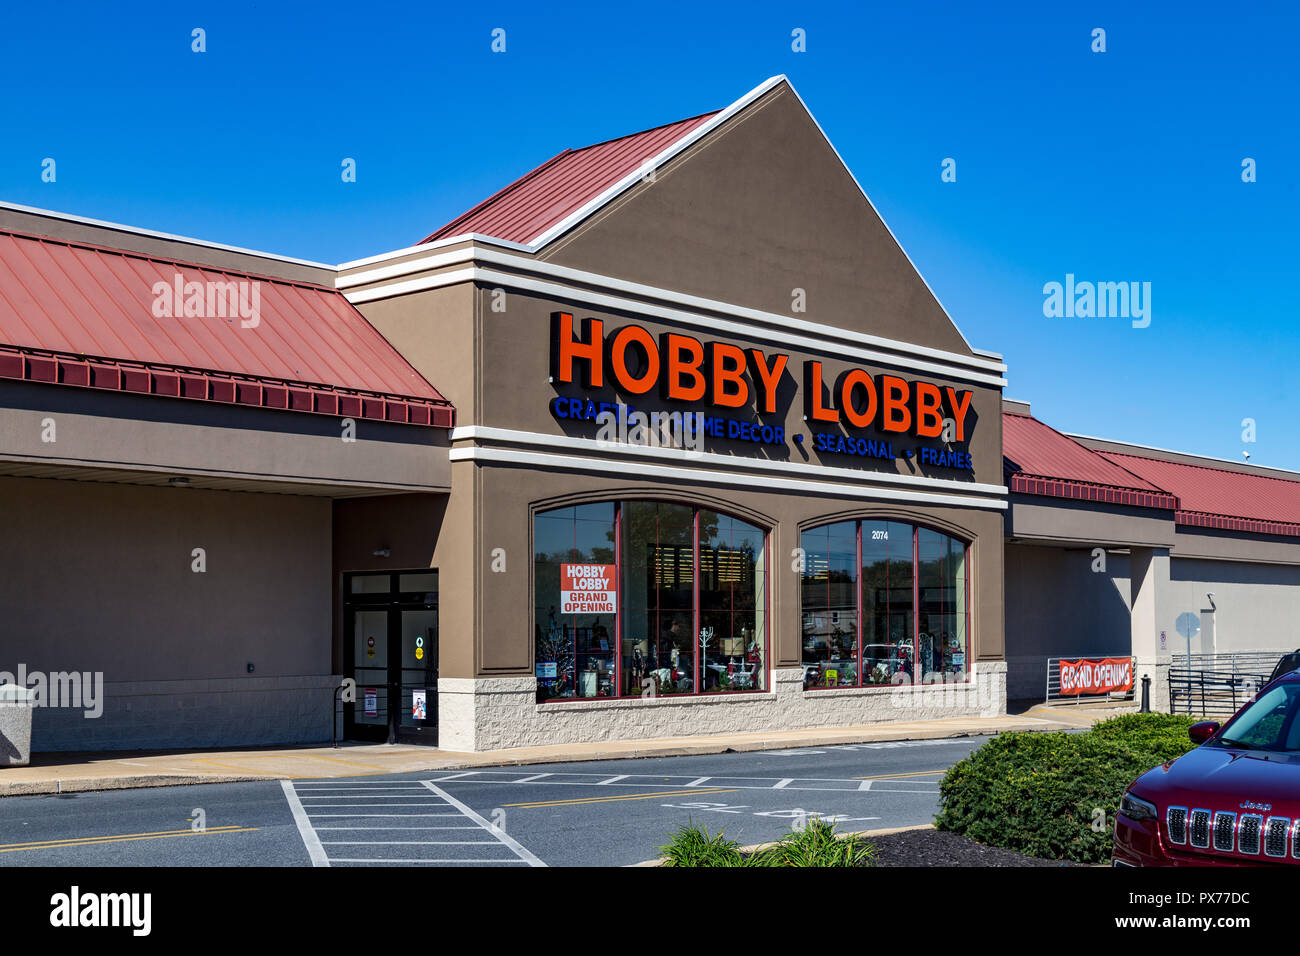 Lancaster, PA, USA - October 18, 2018: Hobby Lobby Stores is a private for-profit corporation that owns and operates a chain of American arts and craf - Stock Image